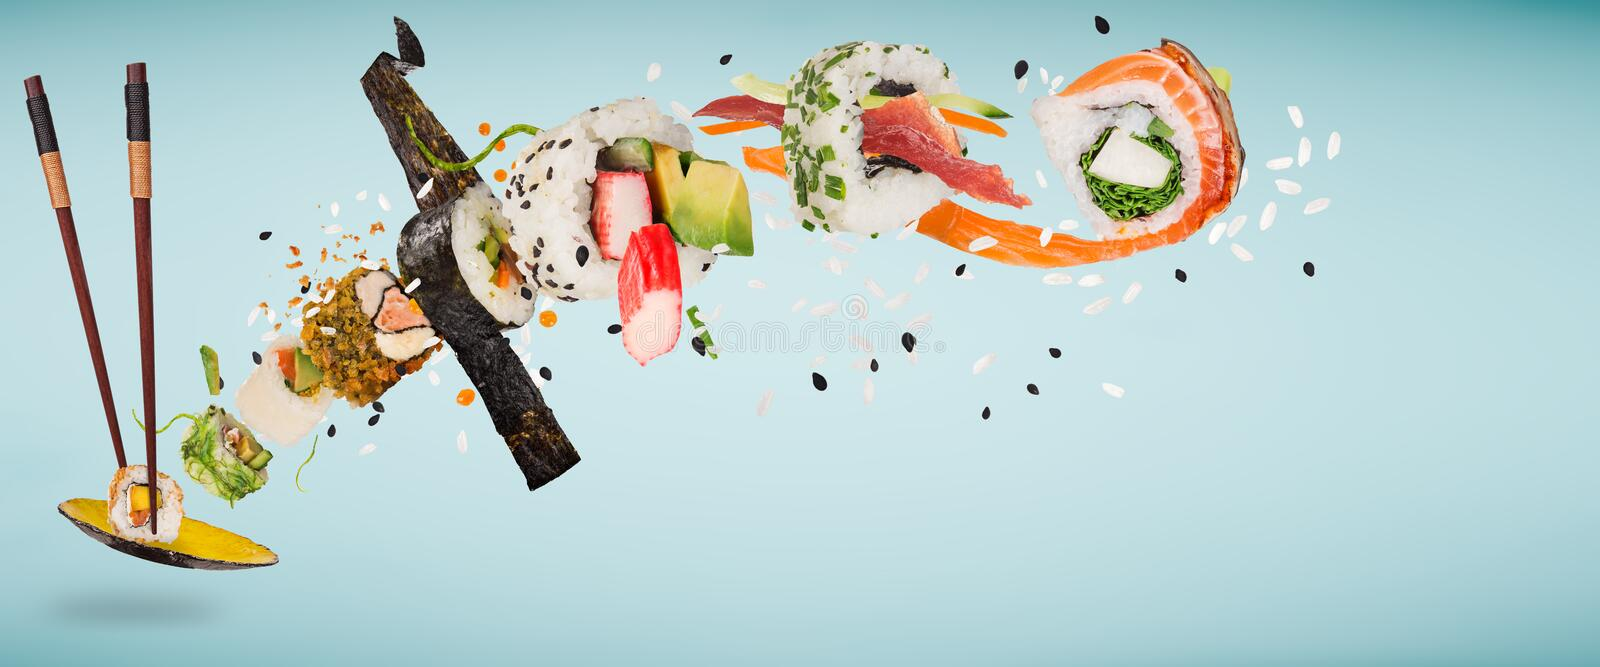 Download Pieces Of Delicious Japanese Sushi Frozen In The Air. Stock Image - Image of black, chaotic: 120290371